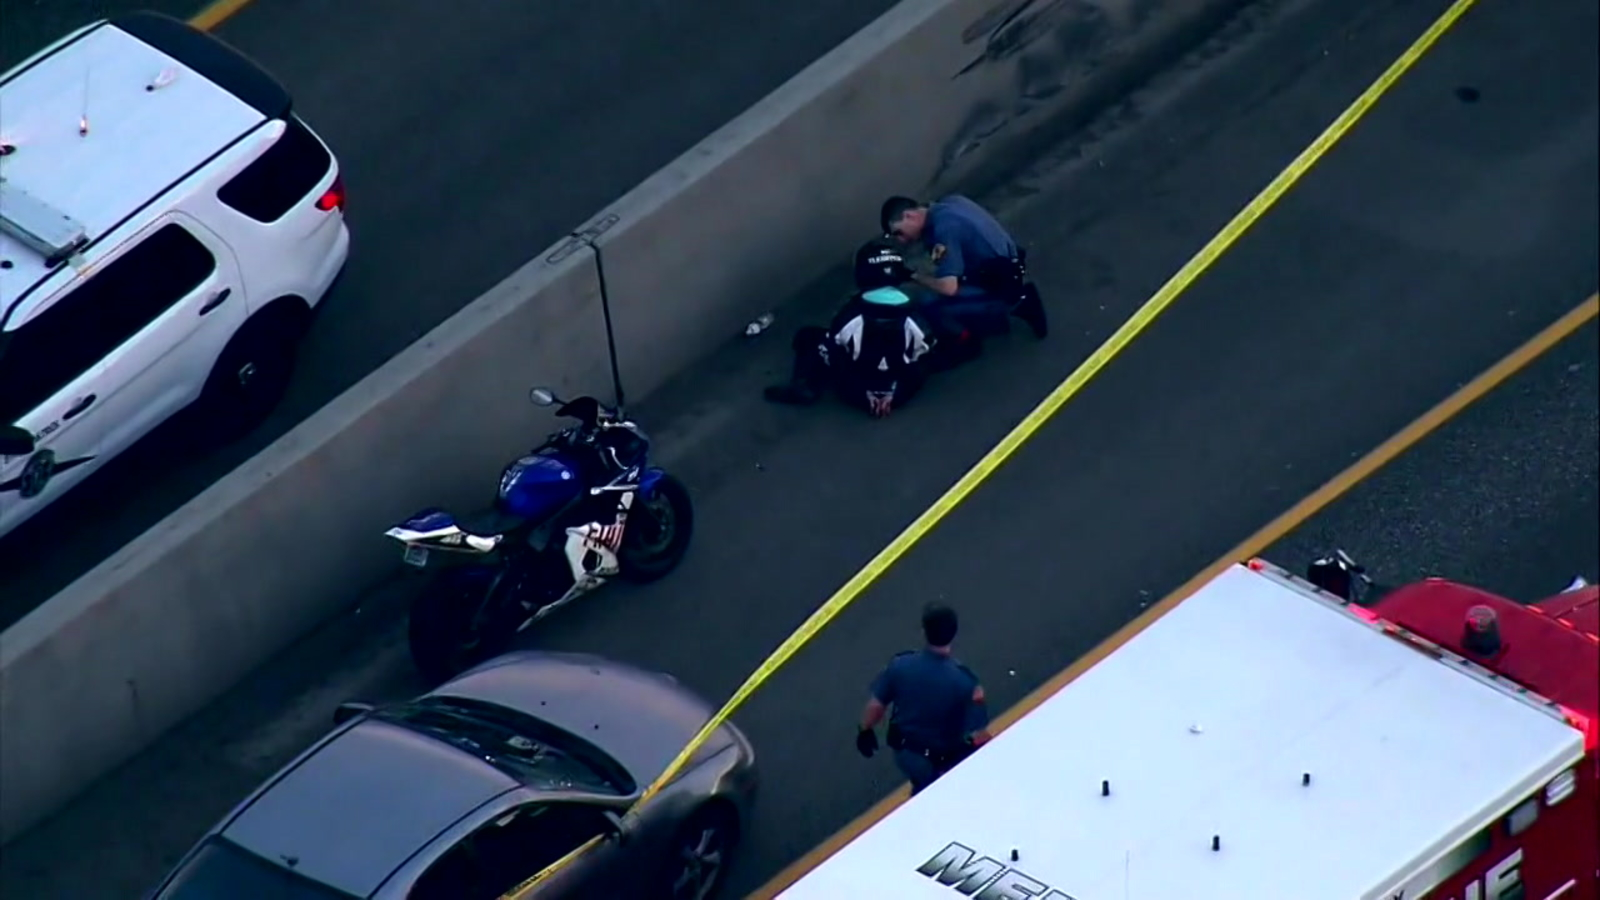 Motorcyclists shoots driver in road rage incident